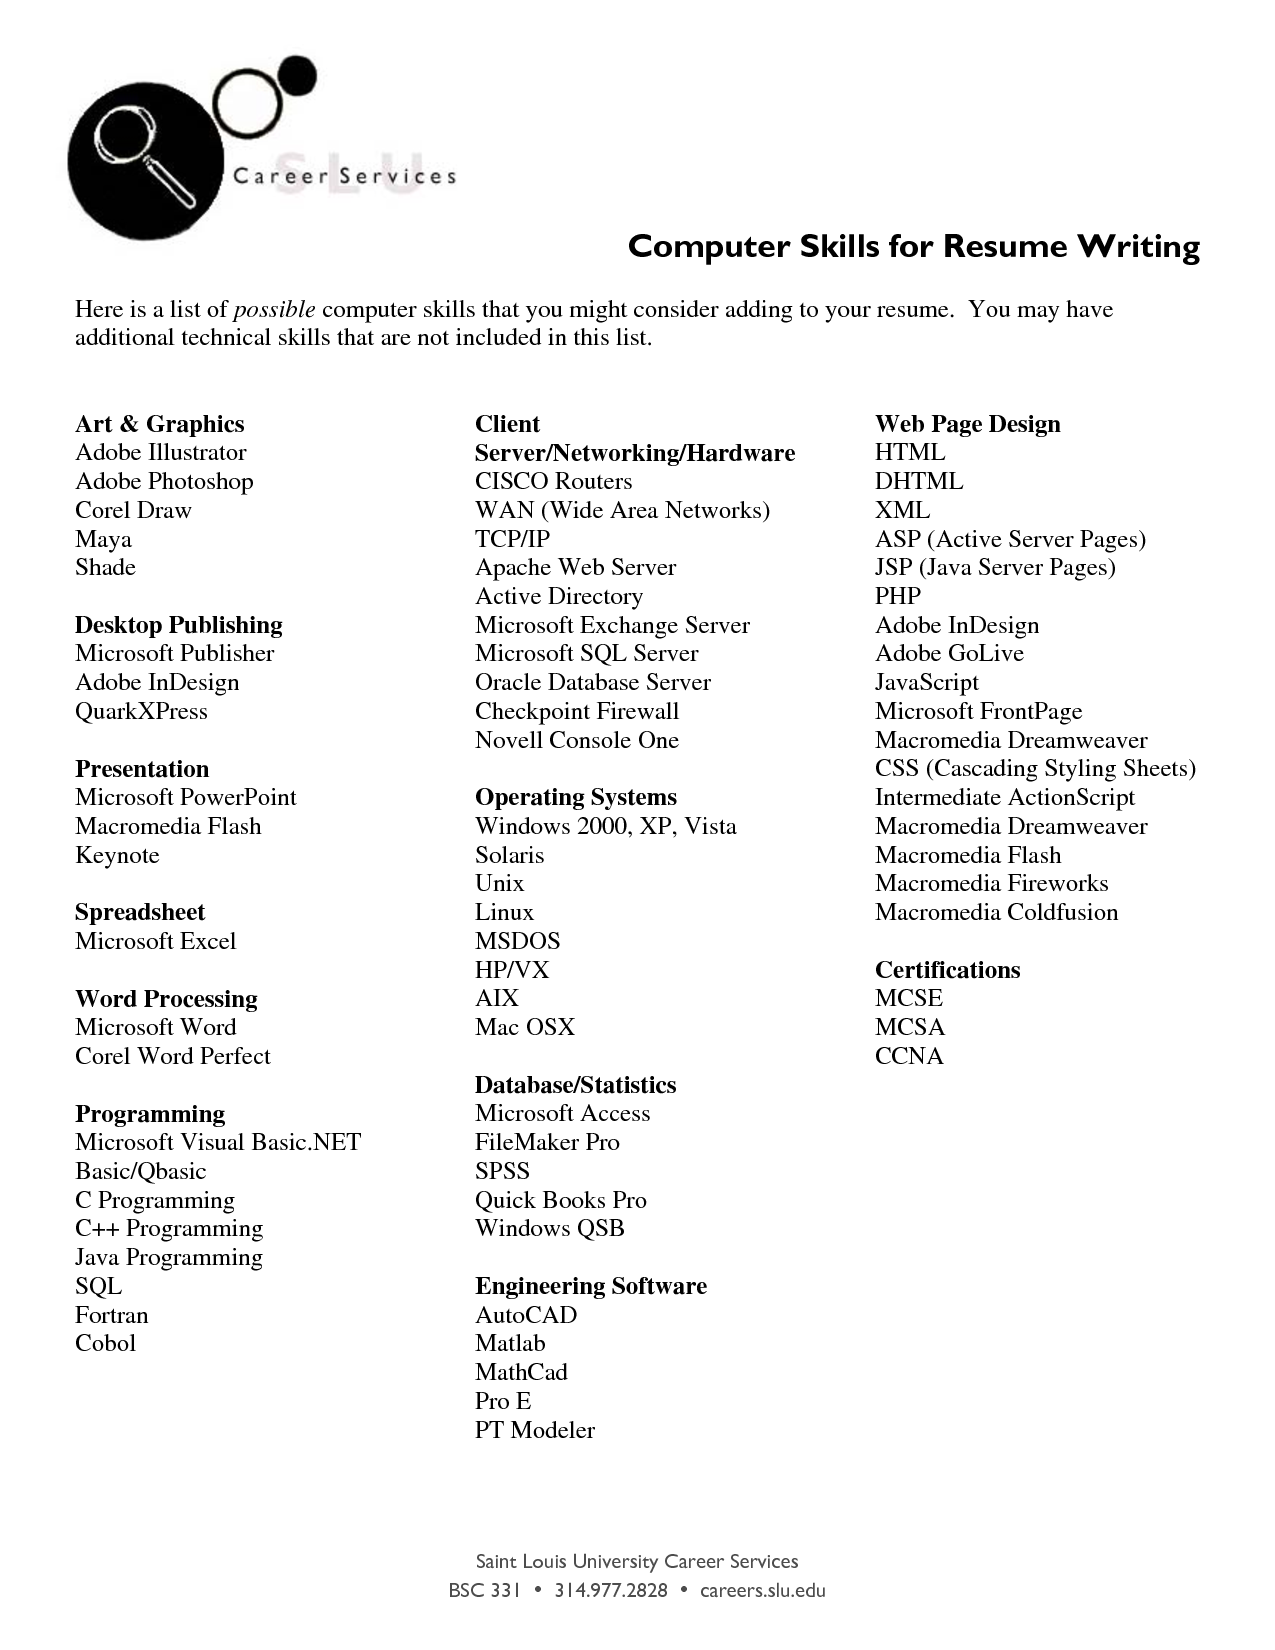 List Of Computer Skills For Resume Fair Pinmaria Johnson On Work  Resumes And Cover Letters  Pinterest